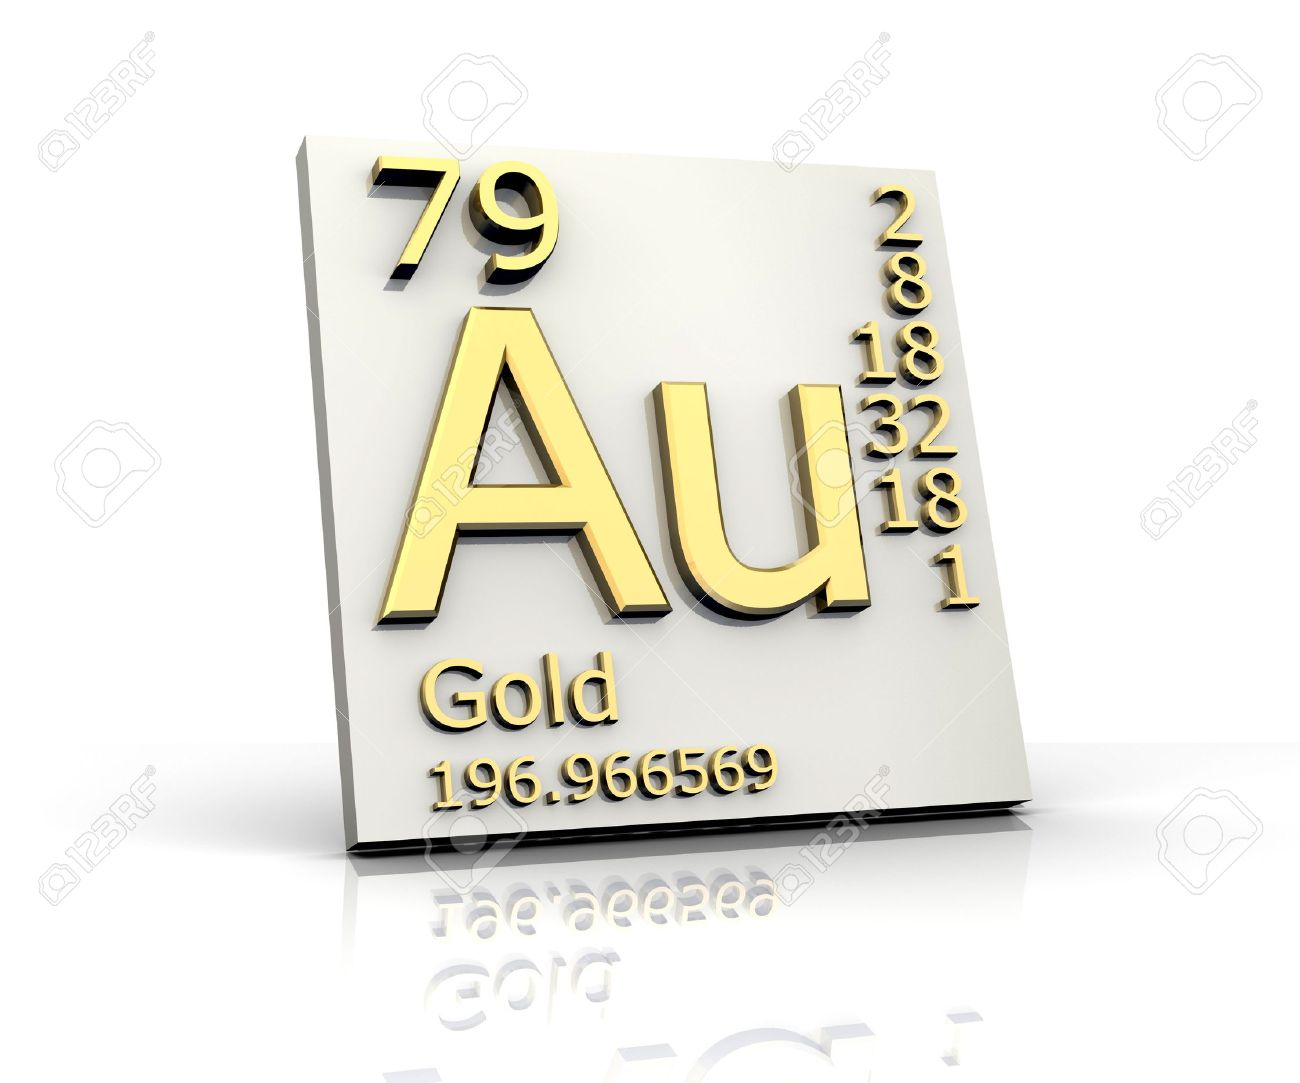 Gold form periodic table of elements stock photo picture and gold form periodic table of elements stock photo 4640422 urtaz Images